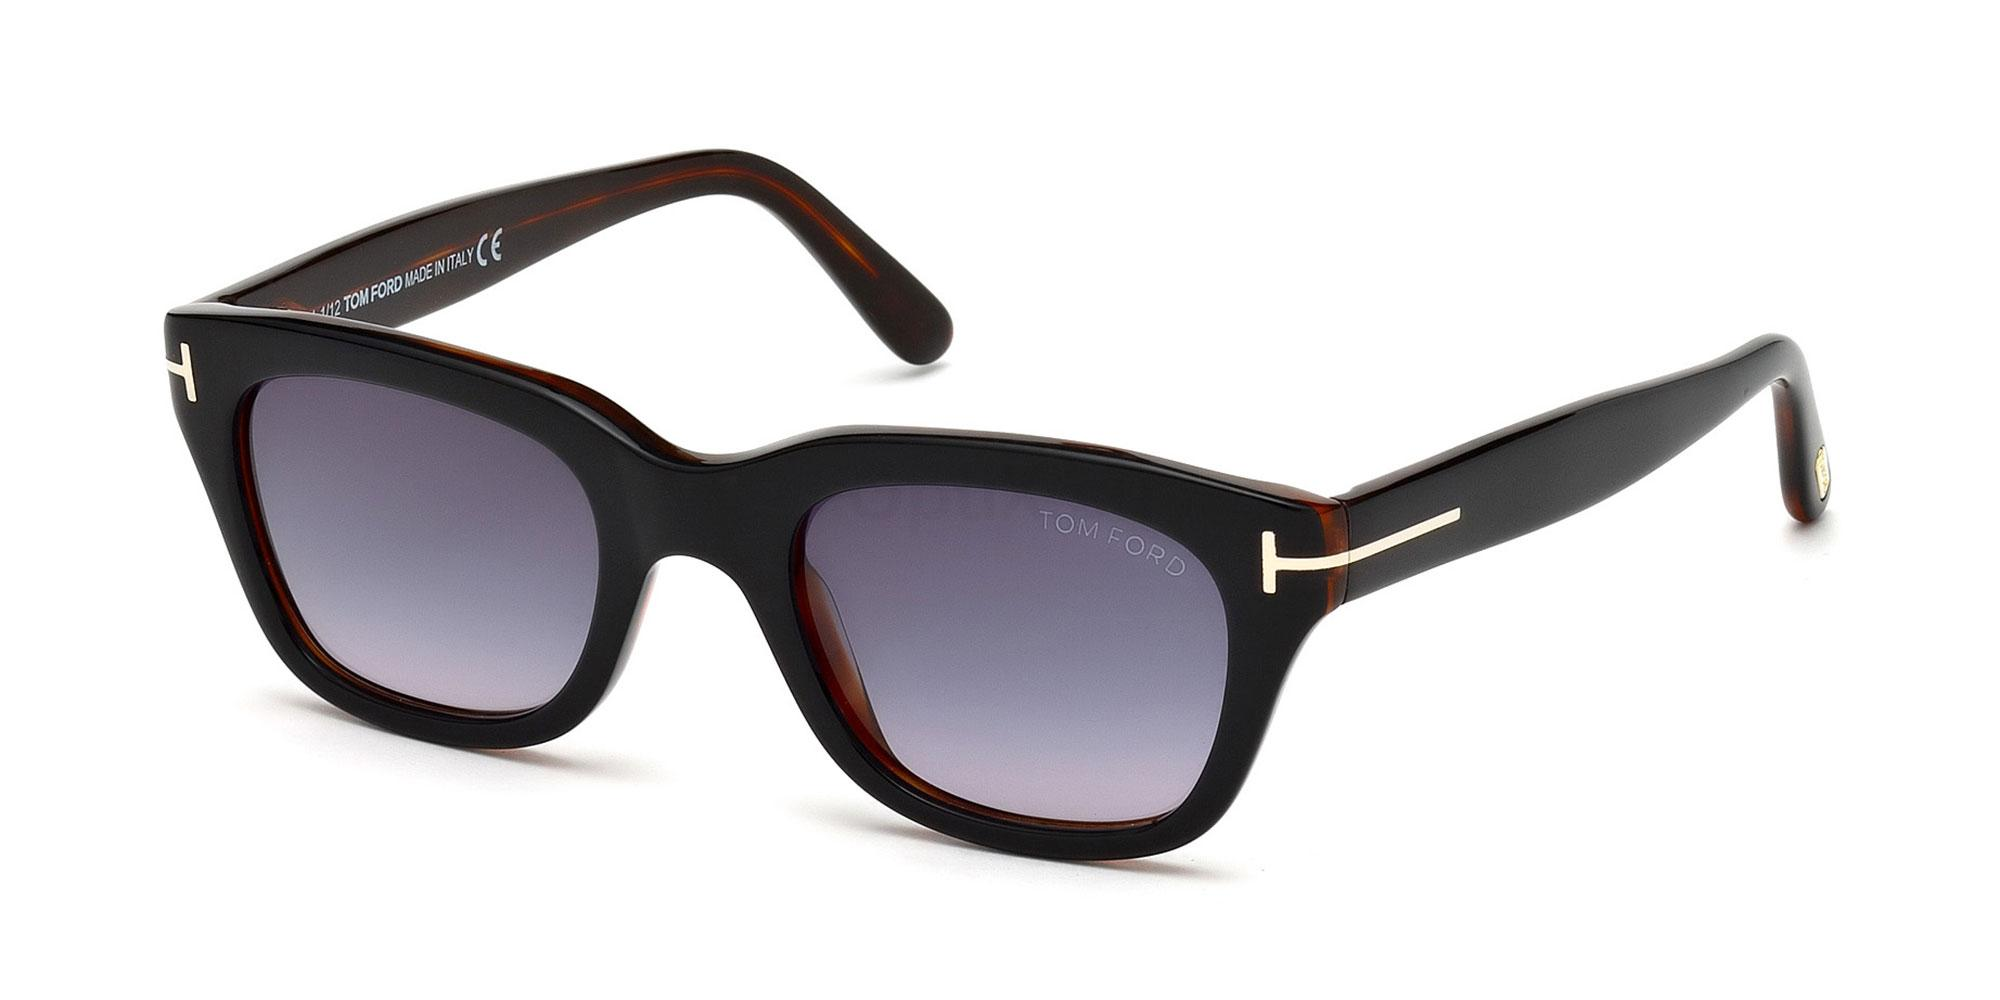 05B FT0237 Snowdon Sunglasses, Tom Ford